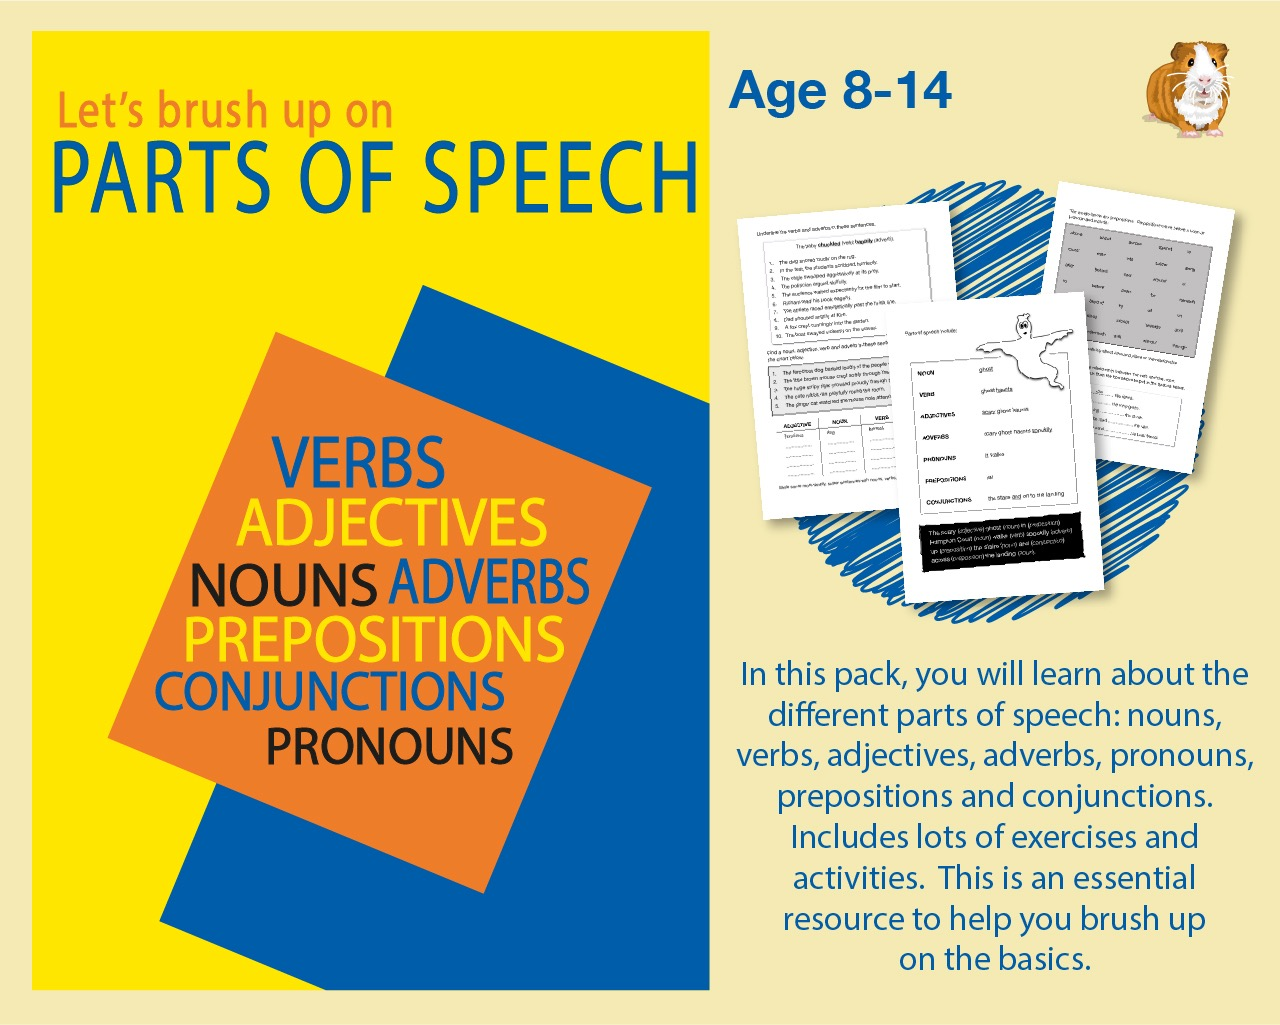 Brush Up On Parts Of Speech (9-14 years)